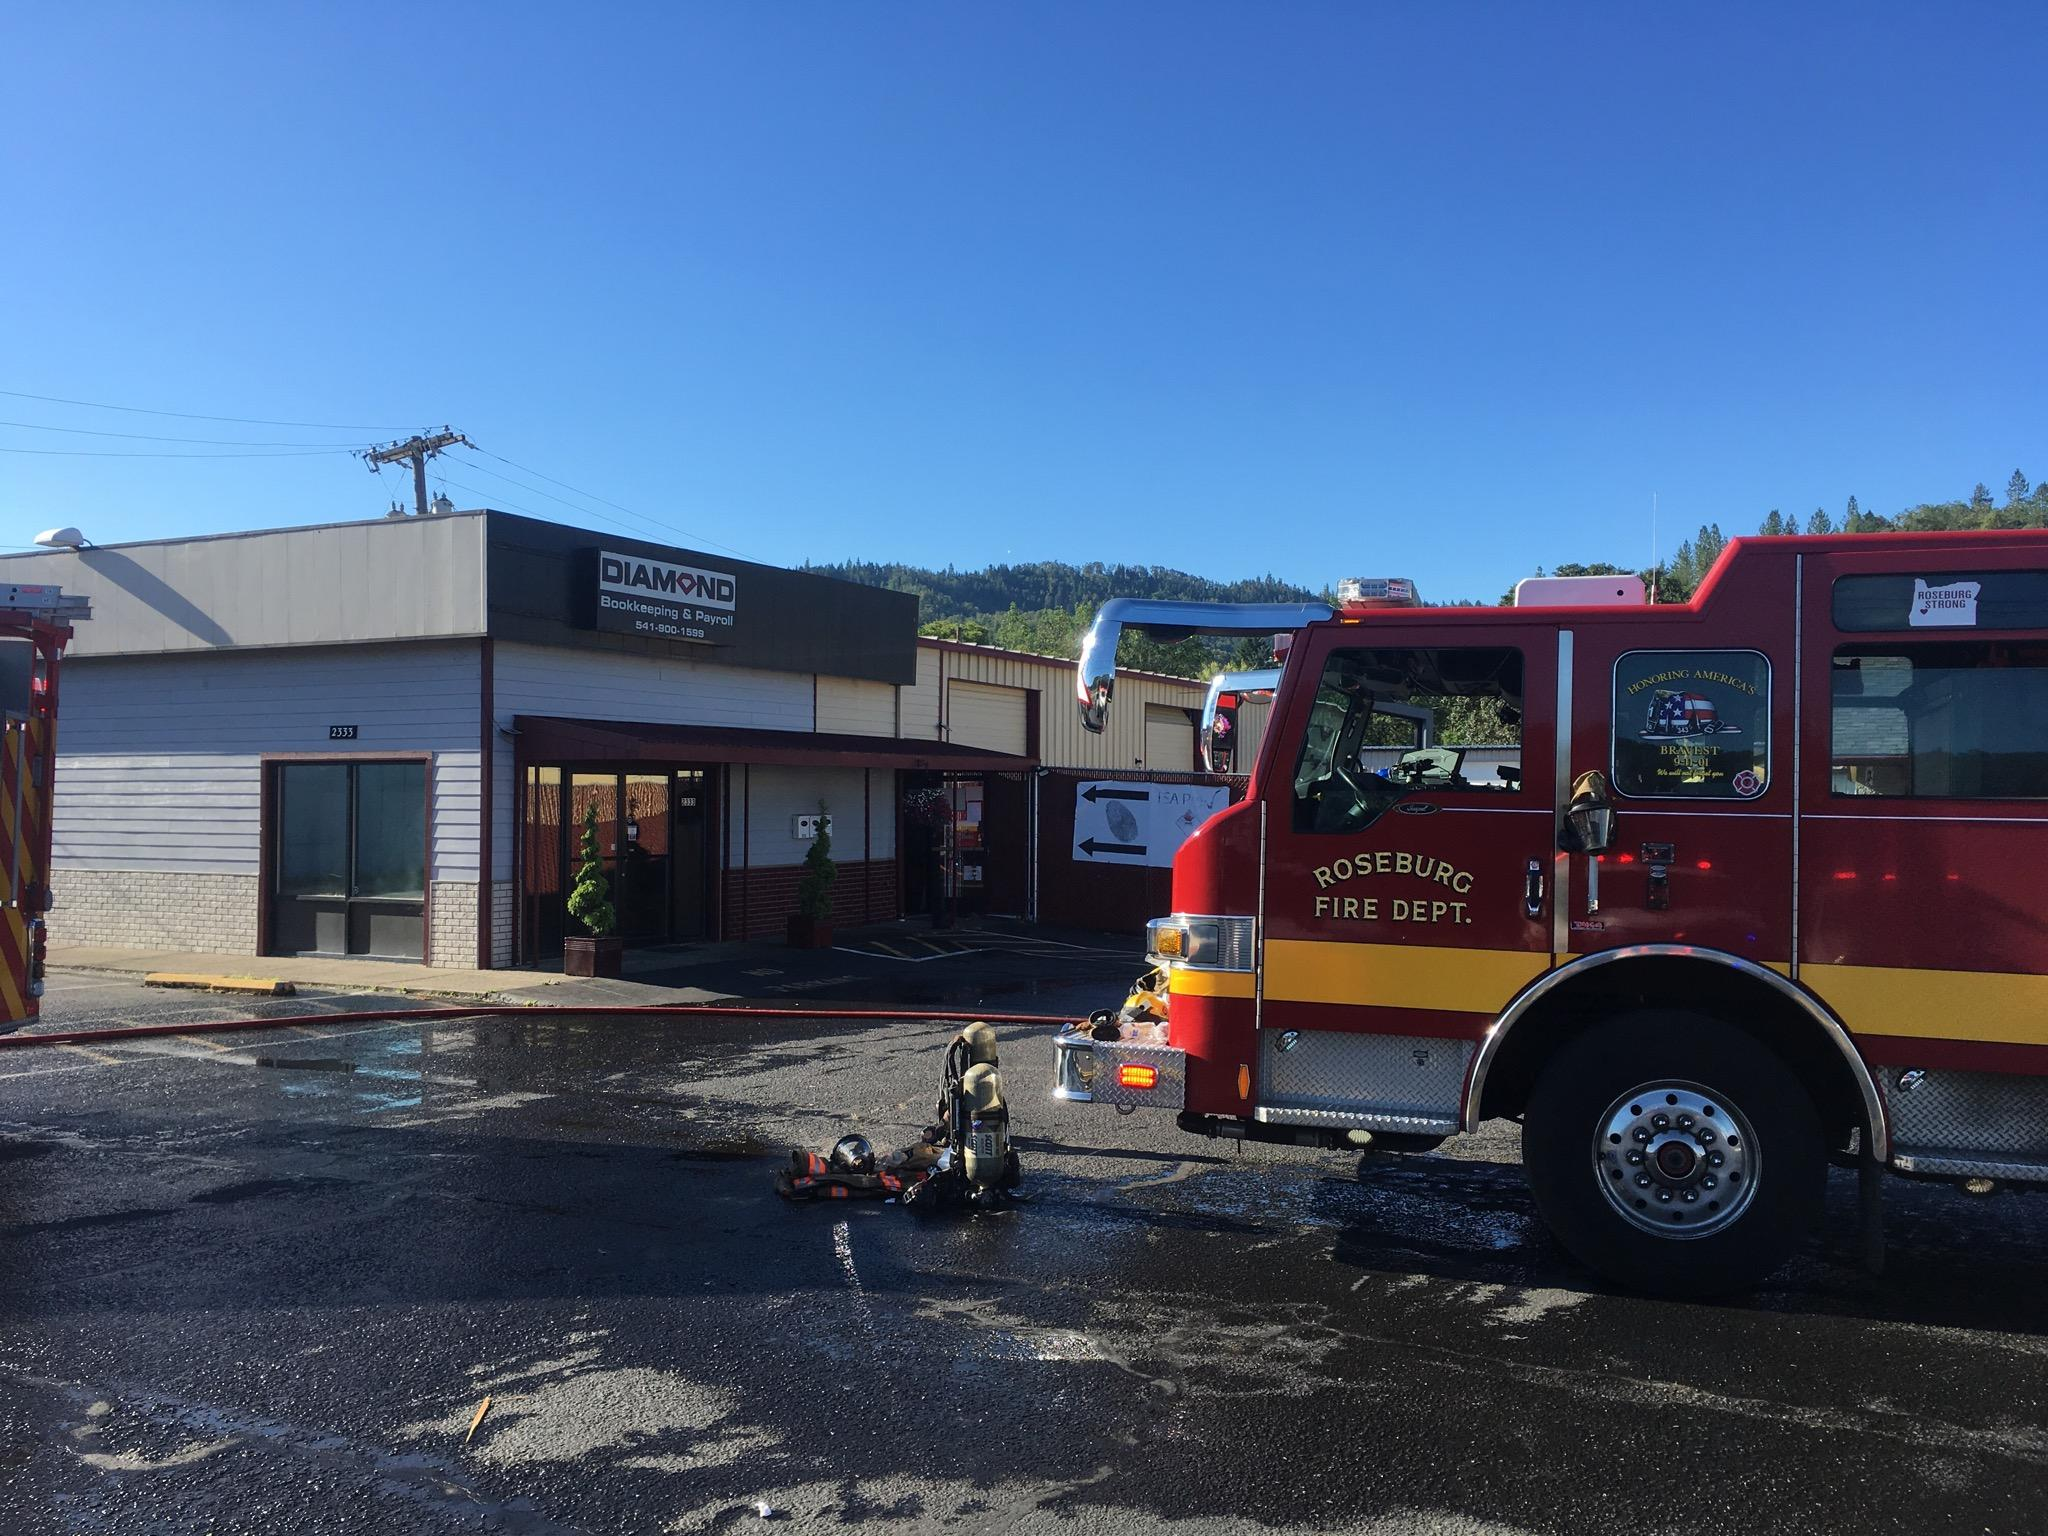 Commercial Structure Fire - 2333 NE Diamond Lake Blvd - 6-18-19 (Photo) featured image